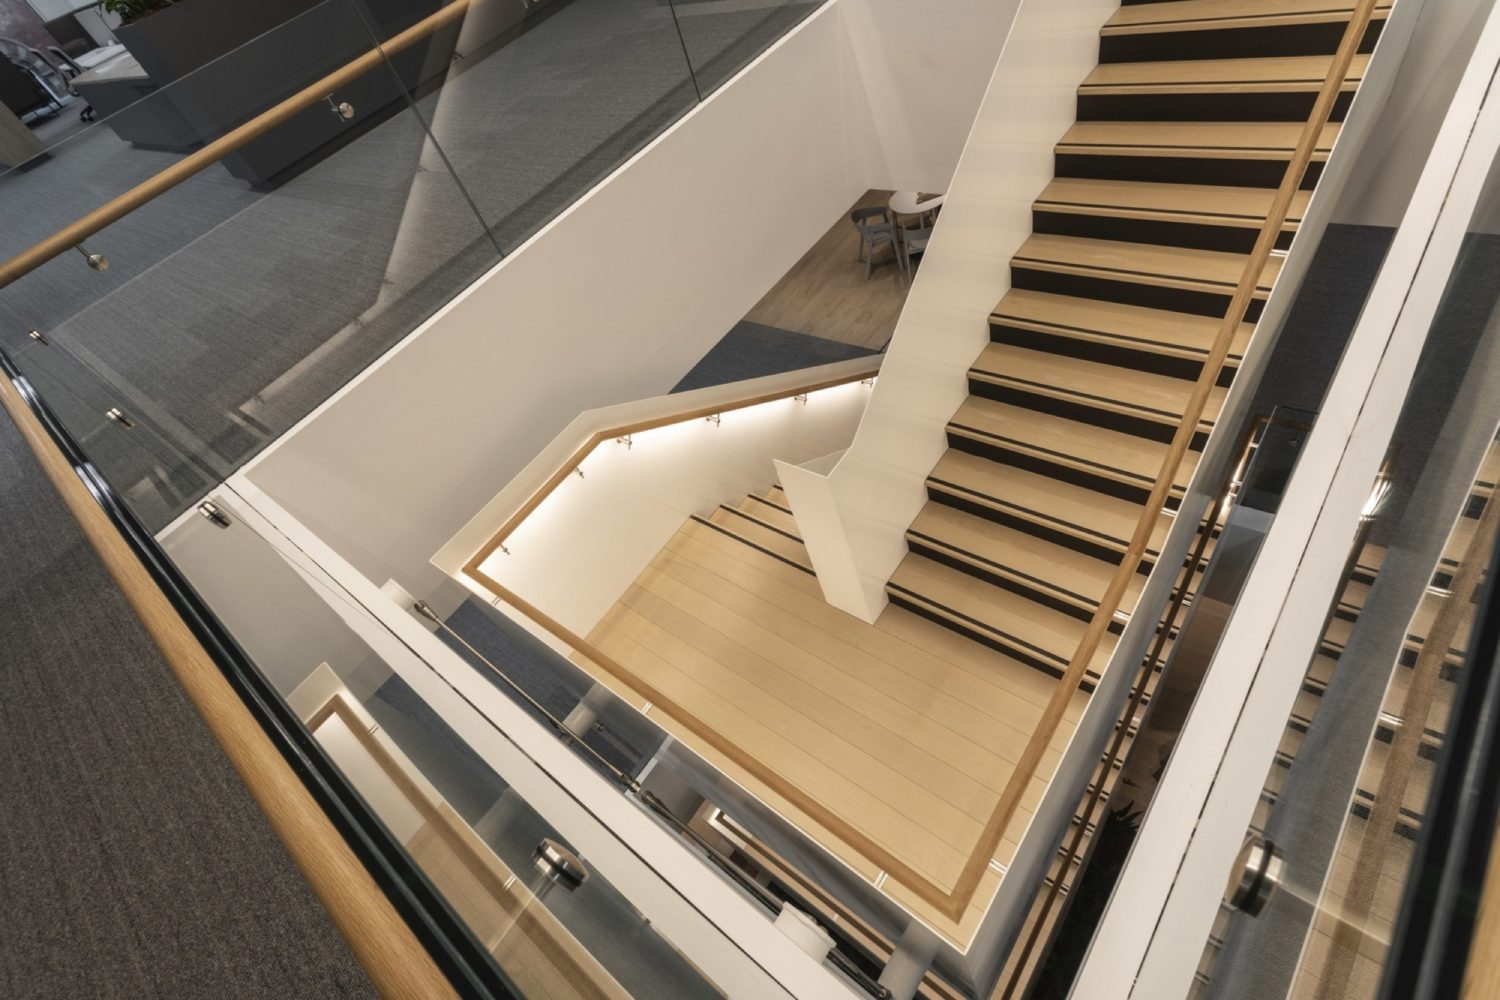 Link staircase for collaboration